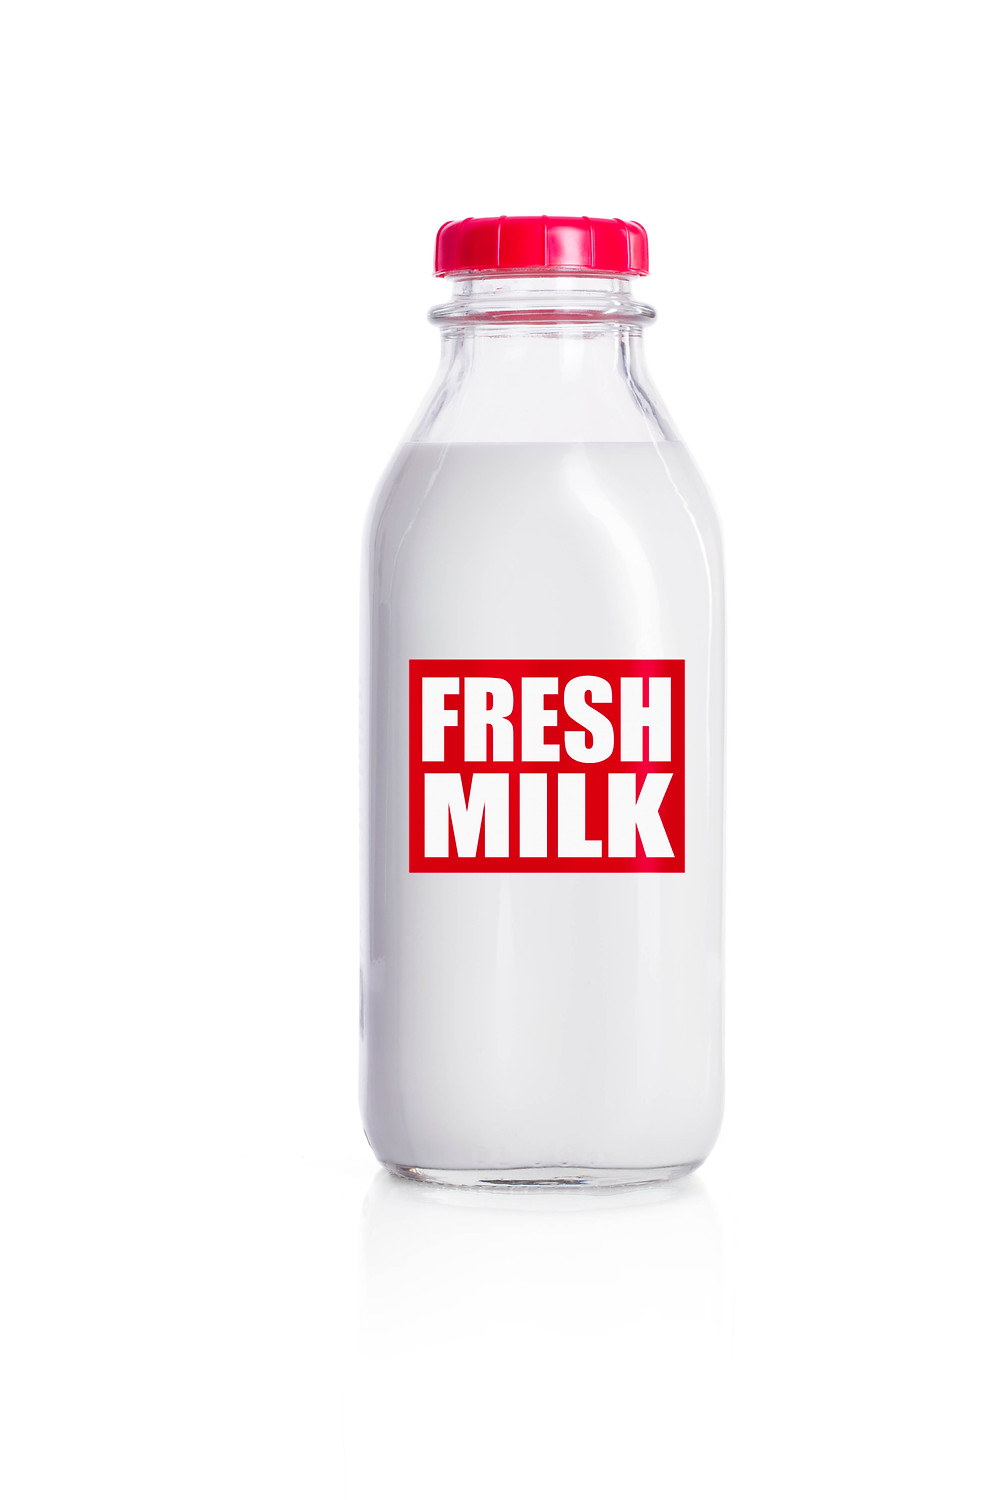 Picture of a milk bottle